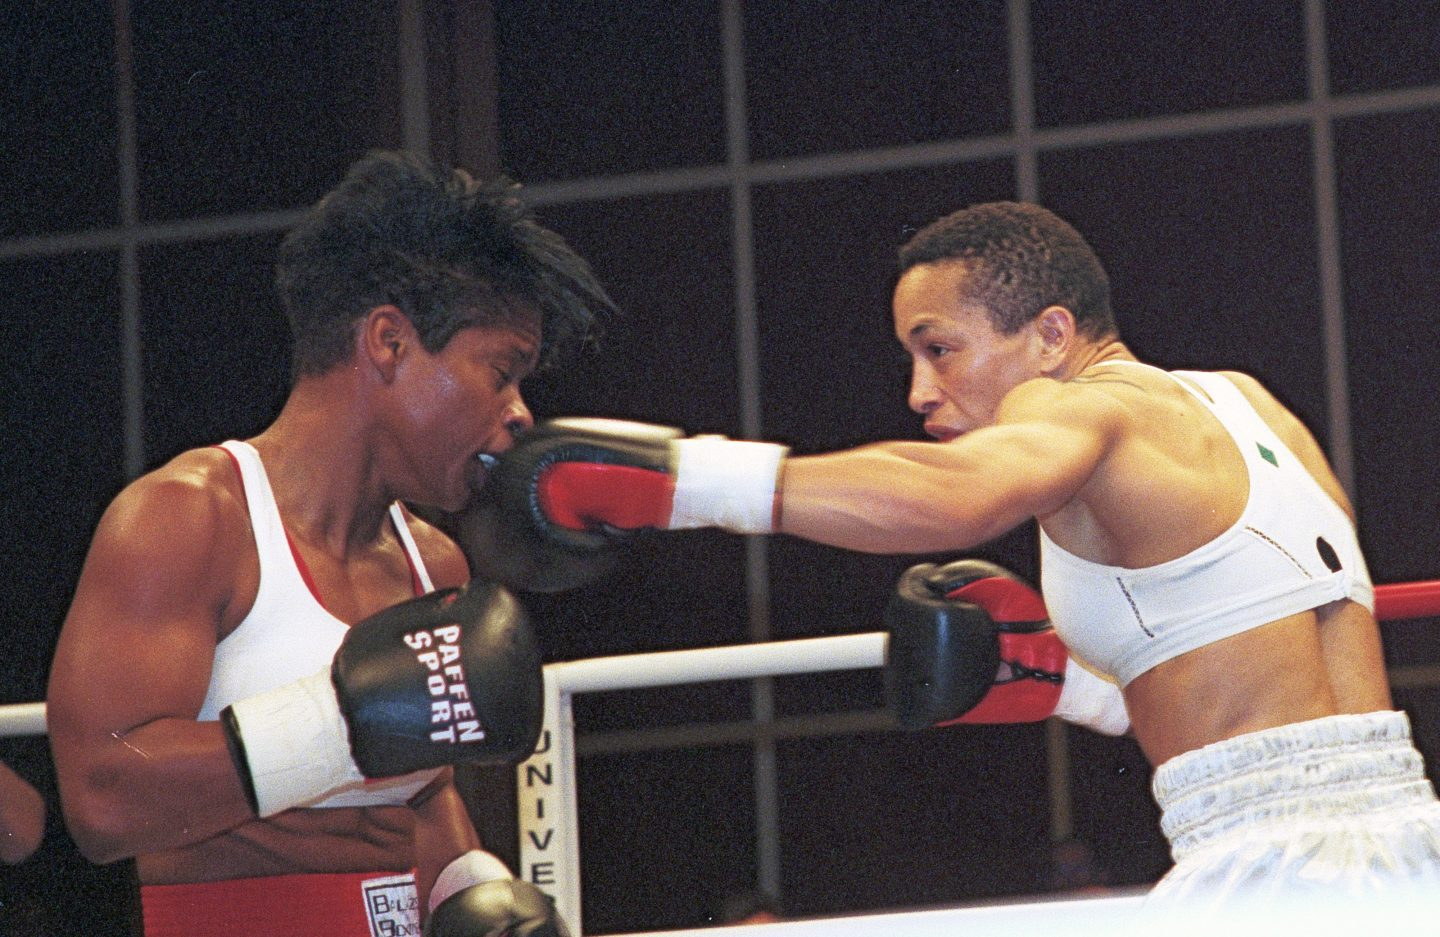 Michele-Aboro-vs-Brown-Fighting-punch--left-jab